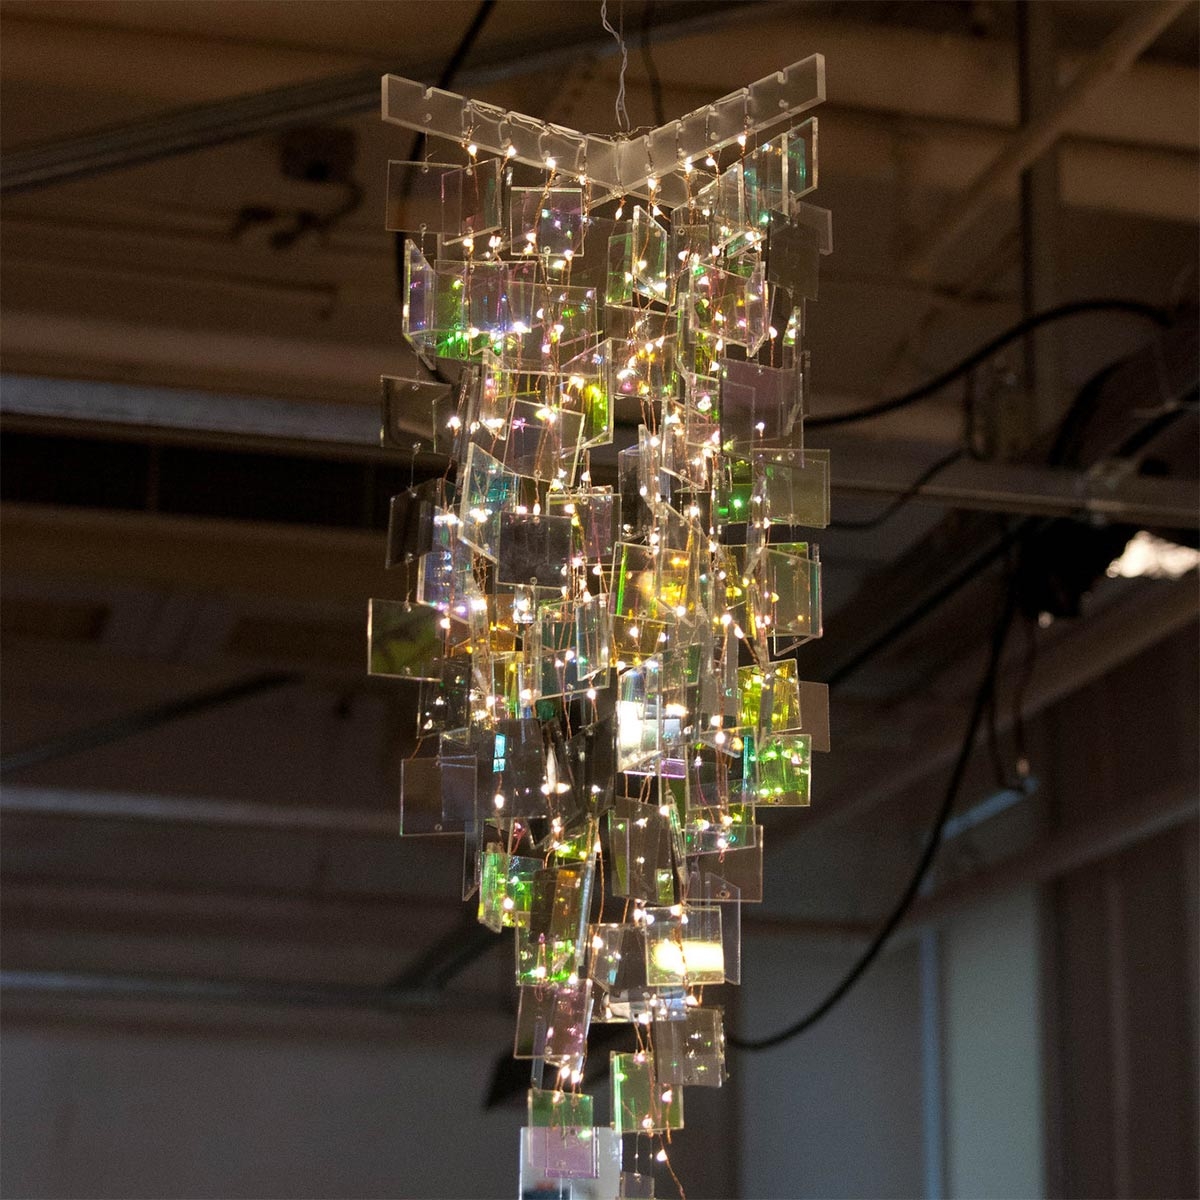 an acrylic chandelier lit up by LED's